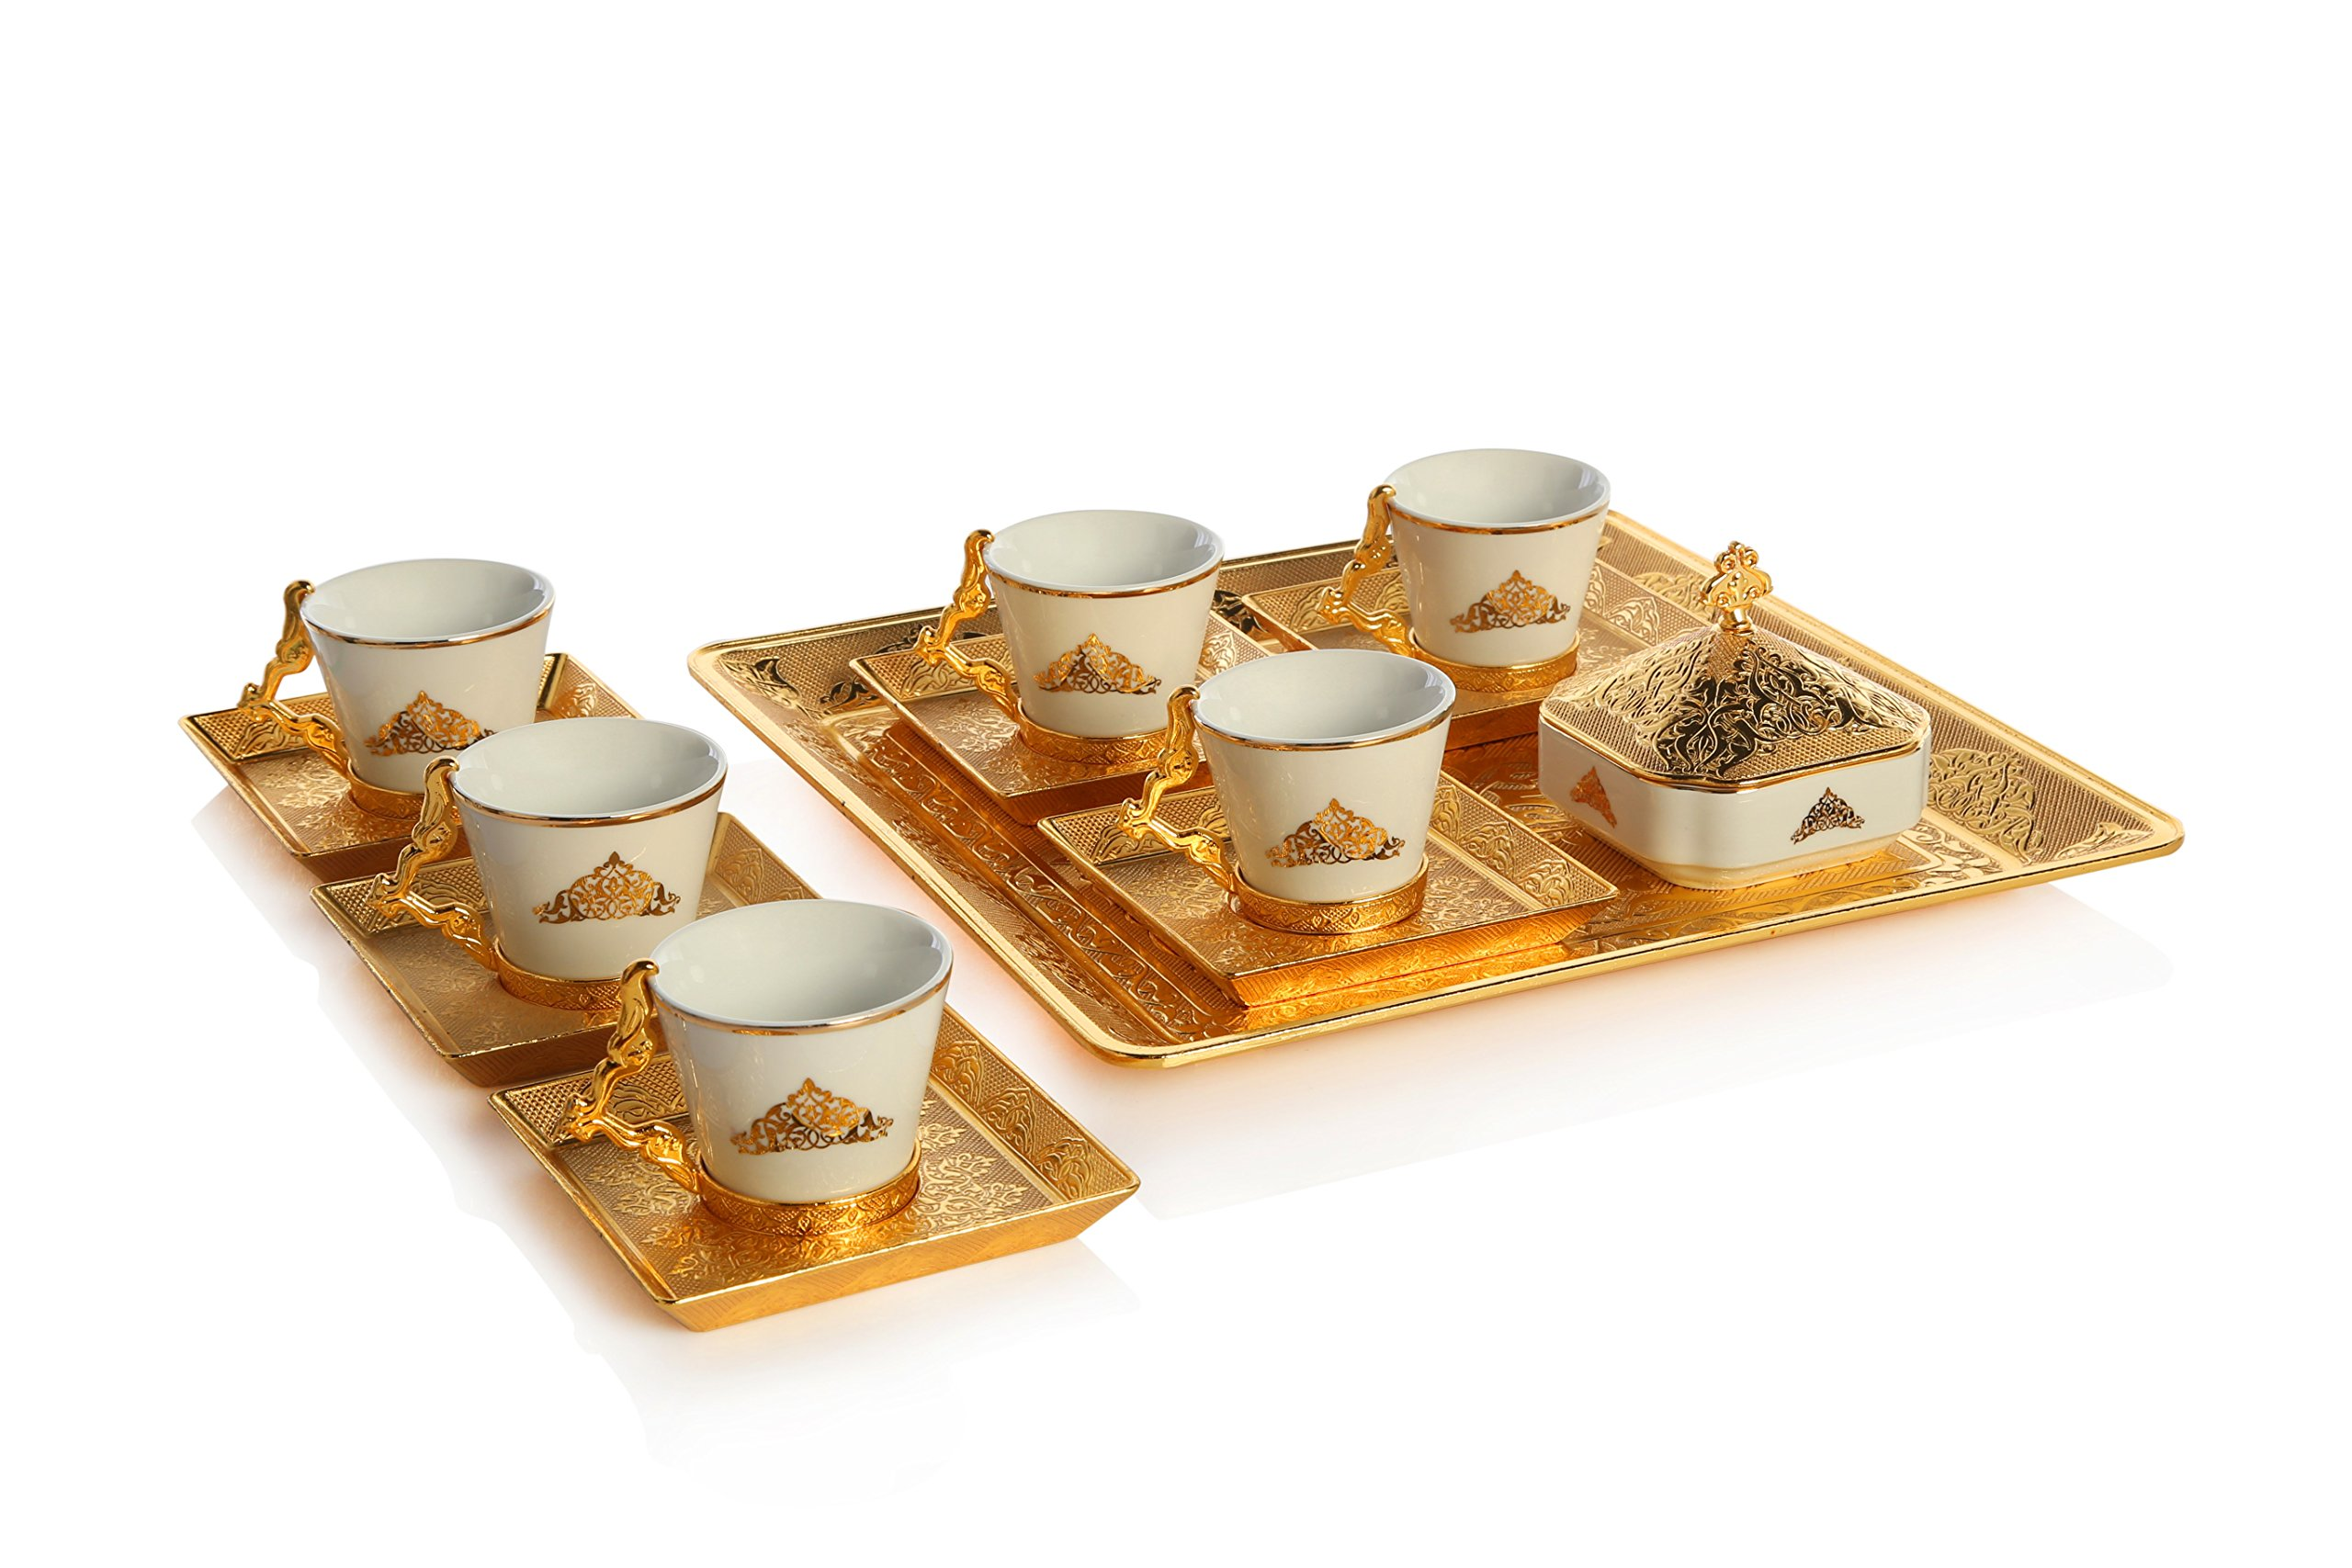 Gold Case Gold Plated Turkish, Arabic, Greek and Espresso Coffee Set for 6 - Made in Turkey - 21 Pieced Set for 6, Gold by Gold Case (Image #3)